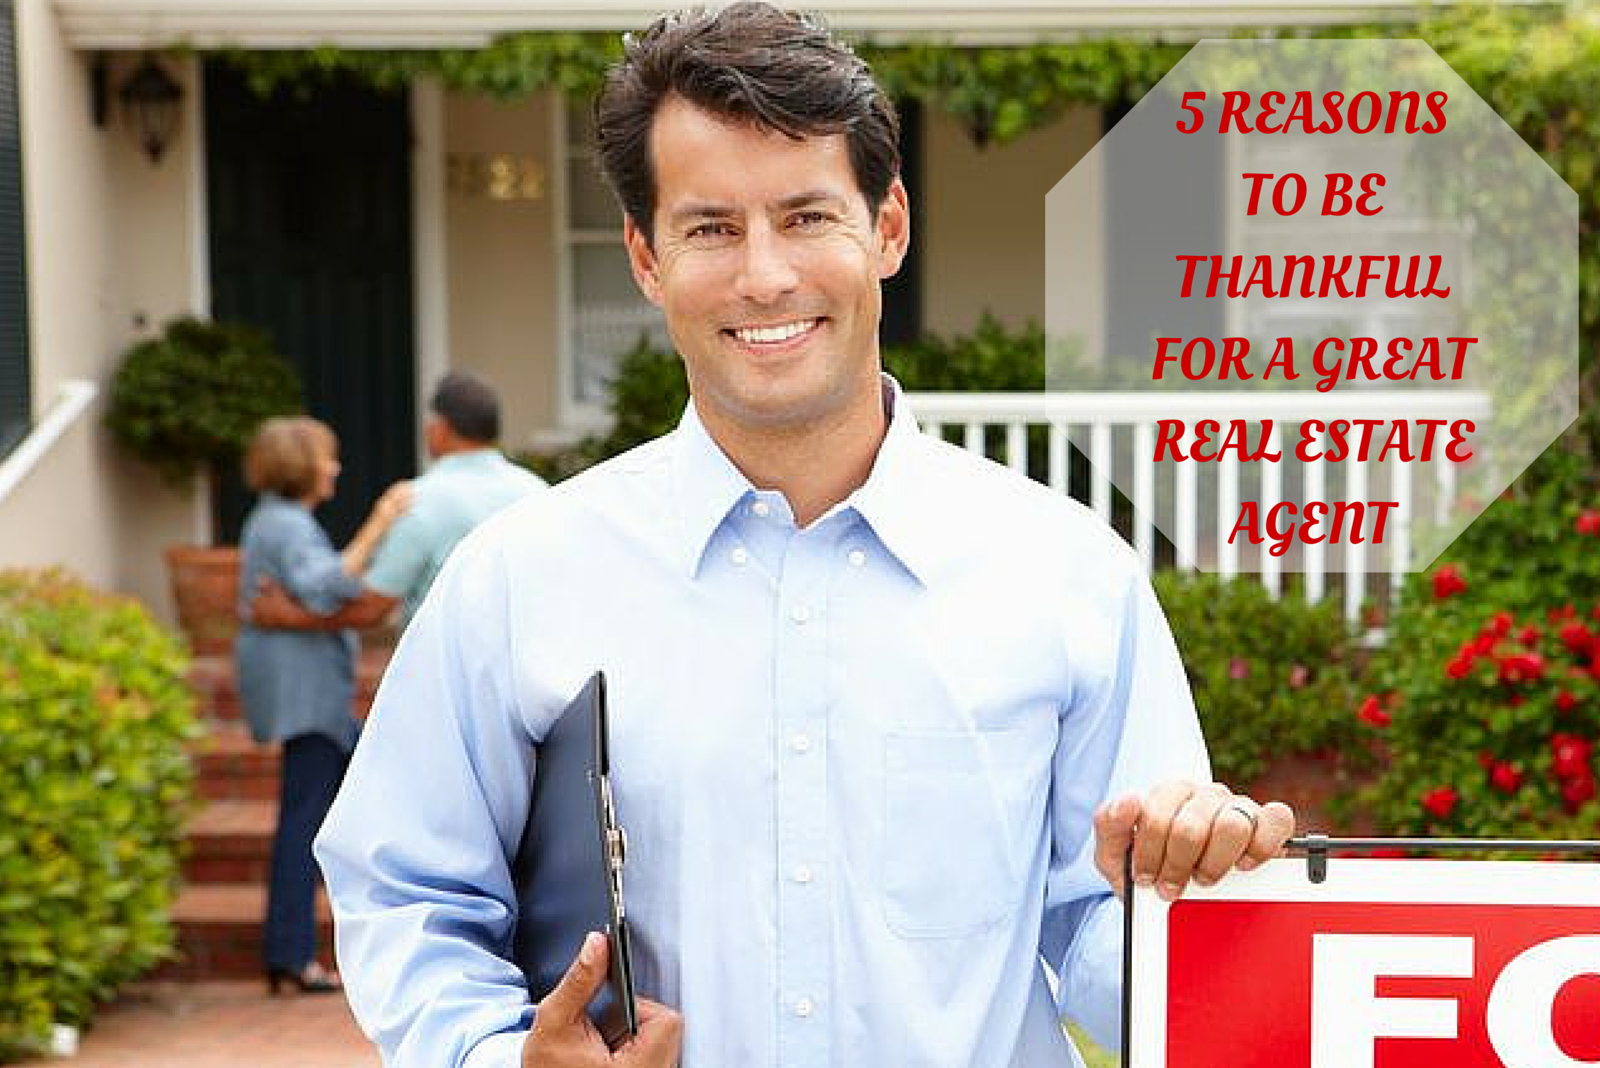 5 Reasons to be Thankful for a Great Real Estate Agent